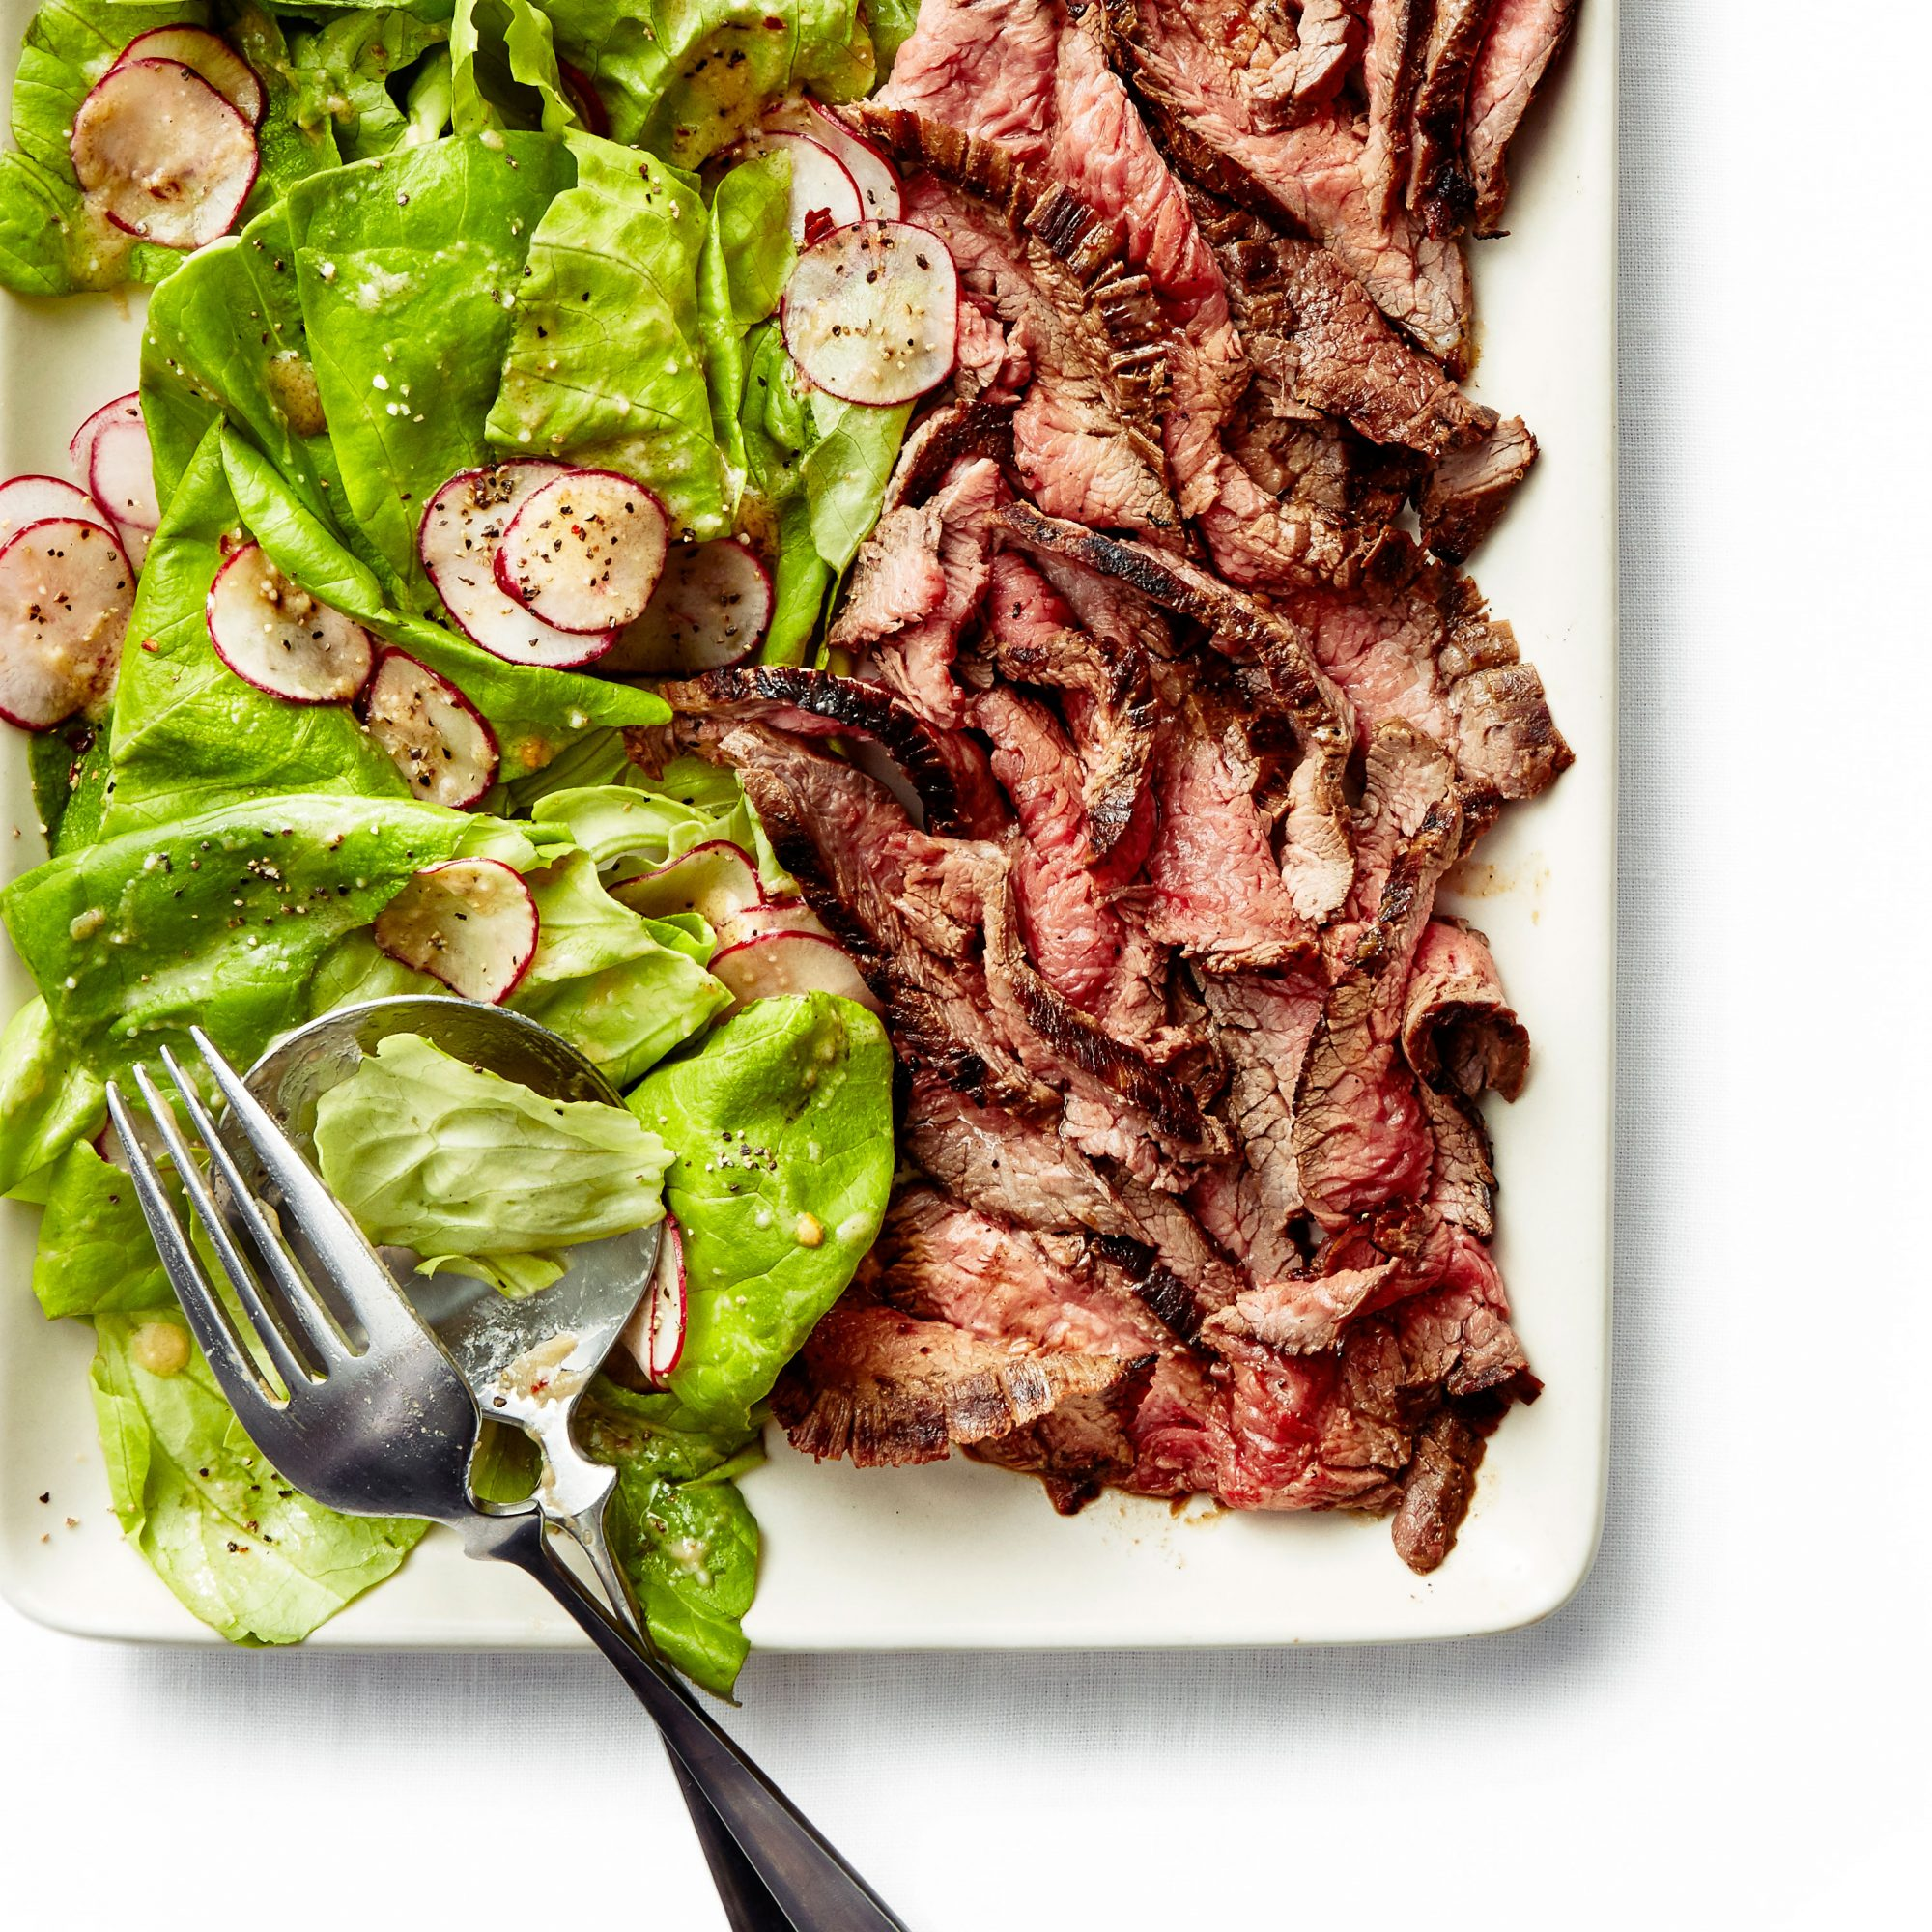 Miso-Marinated Flank Steak with Salad